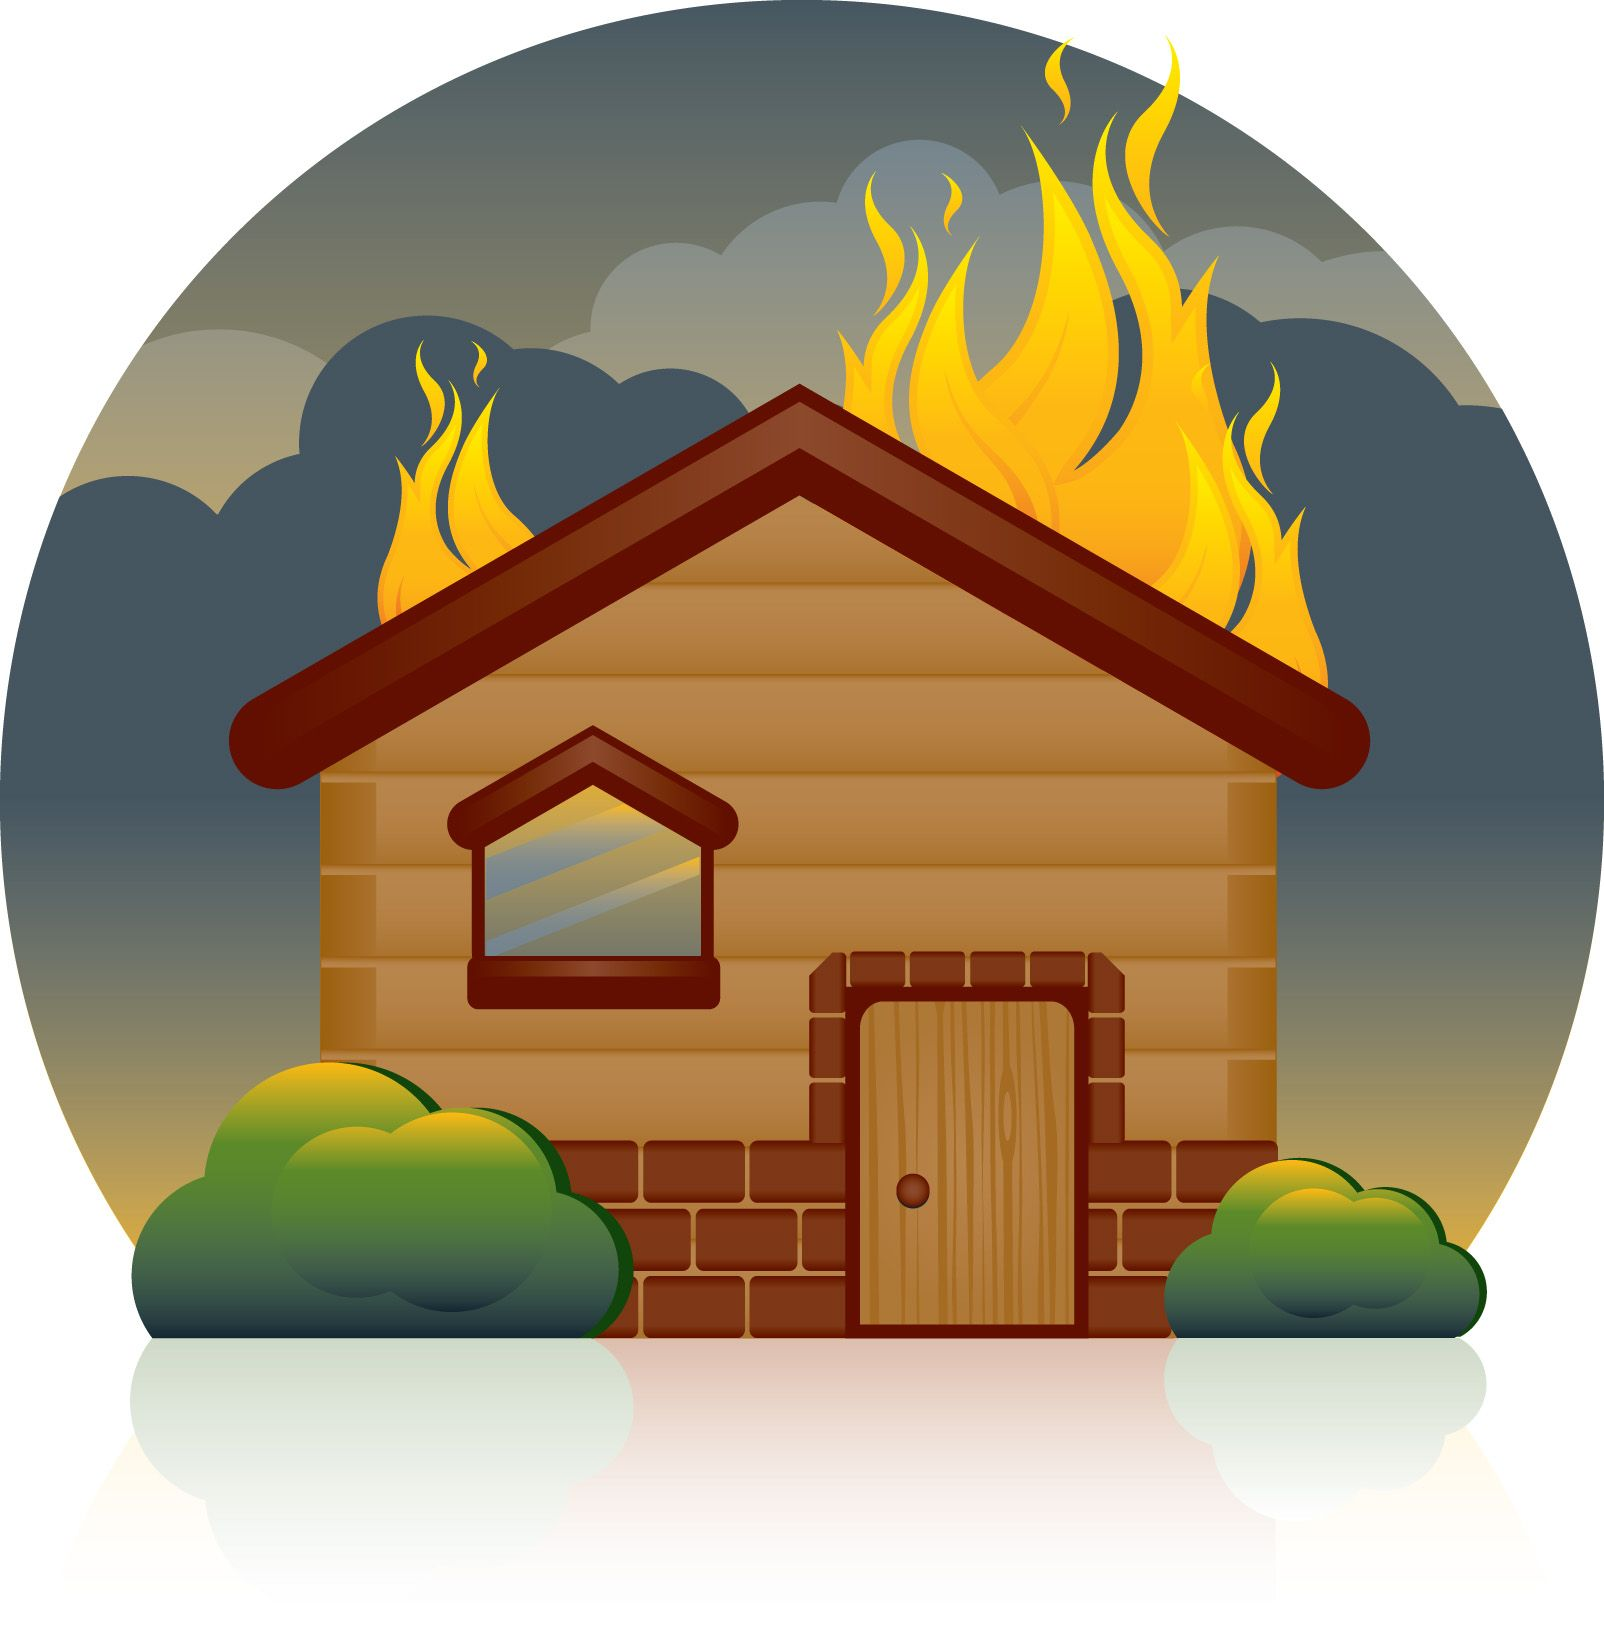 Landlord- What To Do In Case of Fire? - http://www.reiclub.com ...